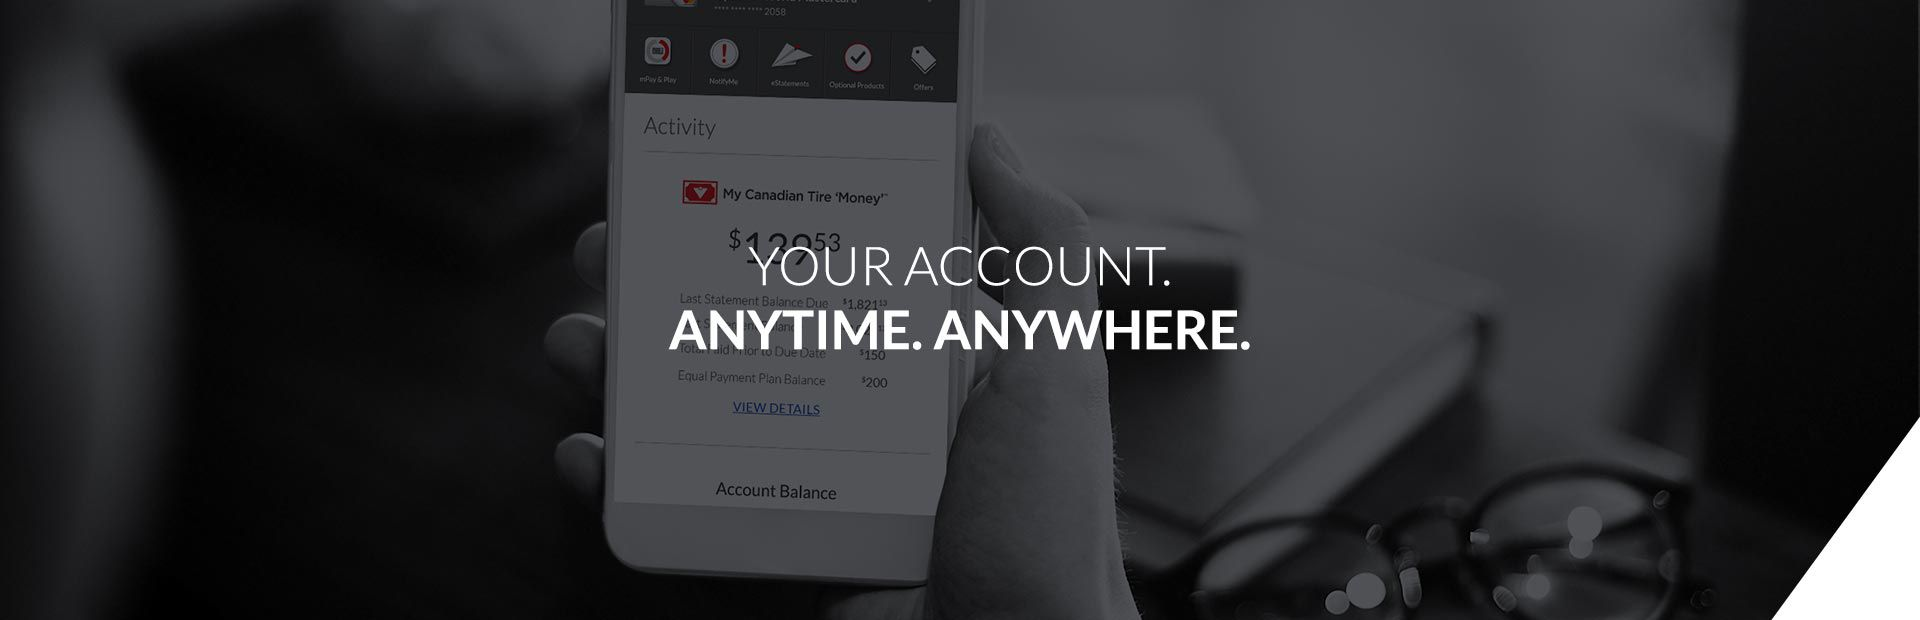 my online account - your account anytime anywhere